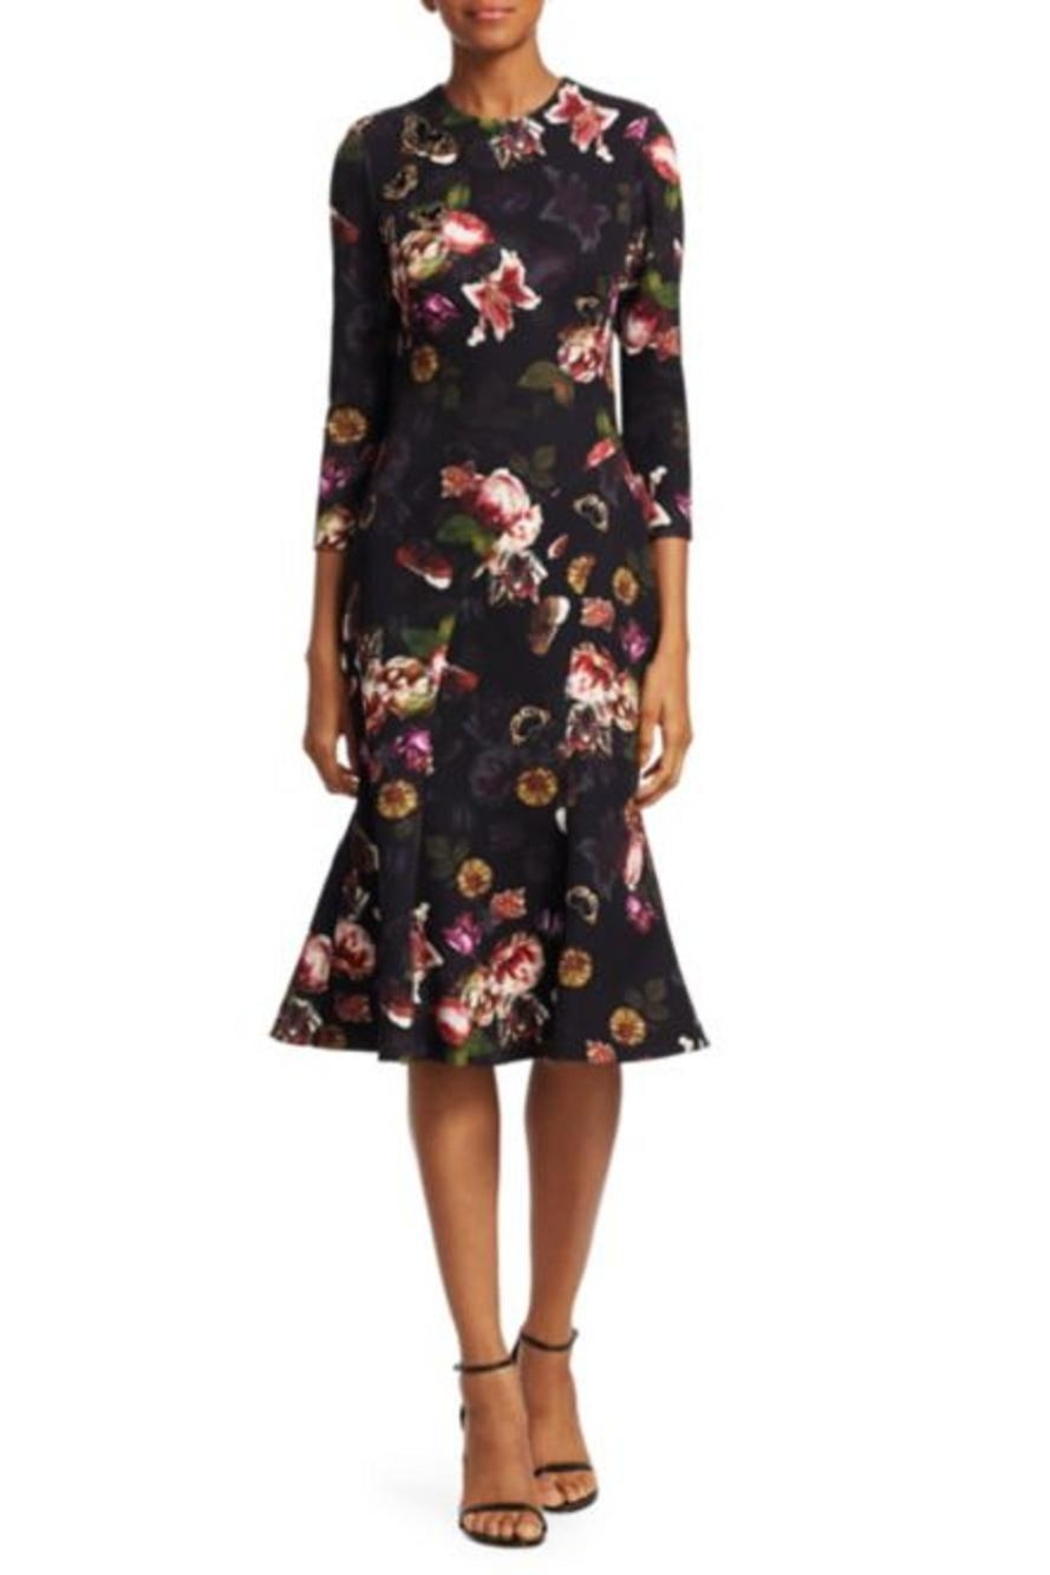 231a0823c4 Theia Floral Cocktail Dress from New Jersey by District 5 Boutique ...